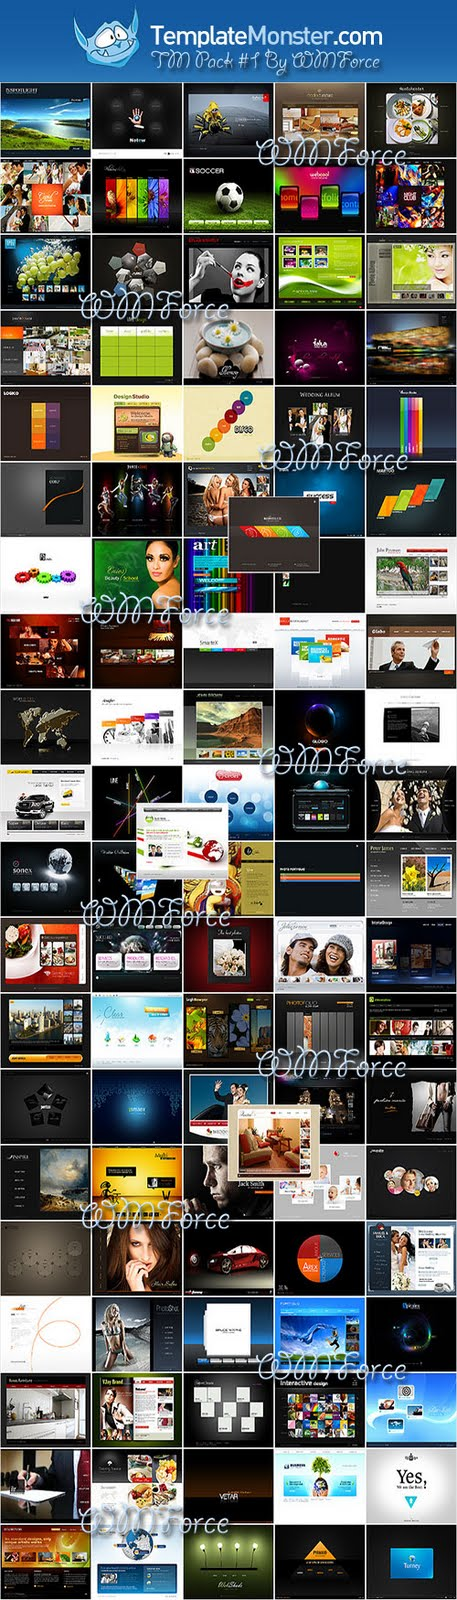 Template Monster Flash Templates Pack #1 By WMForce Team